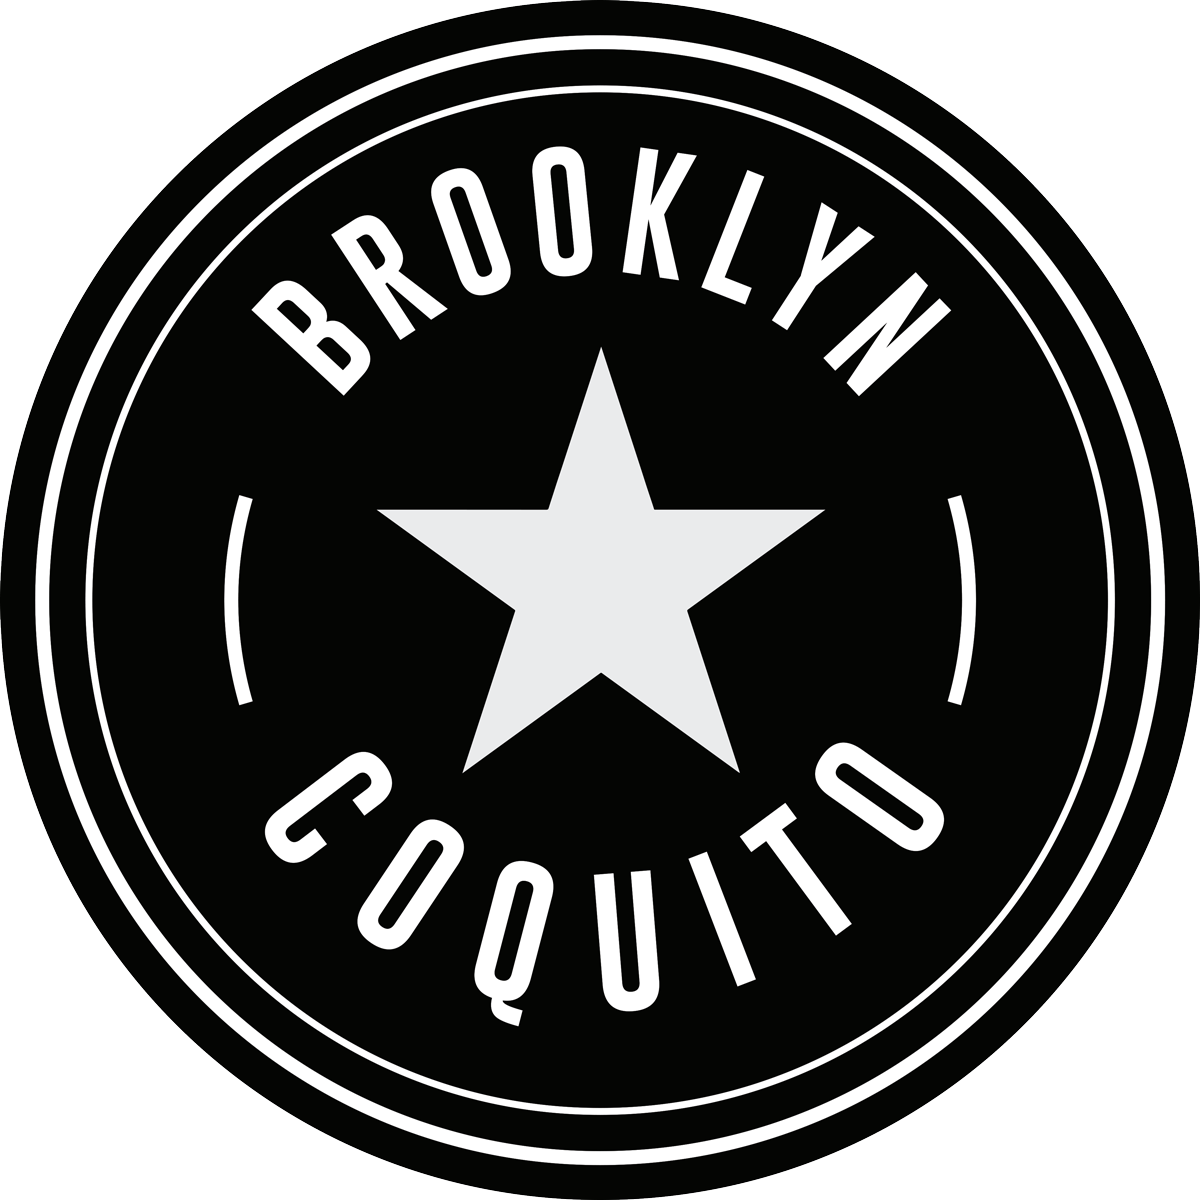 BKcoquito_logo17-BW.png